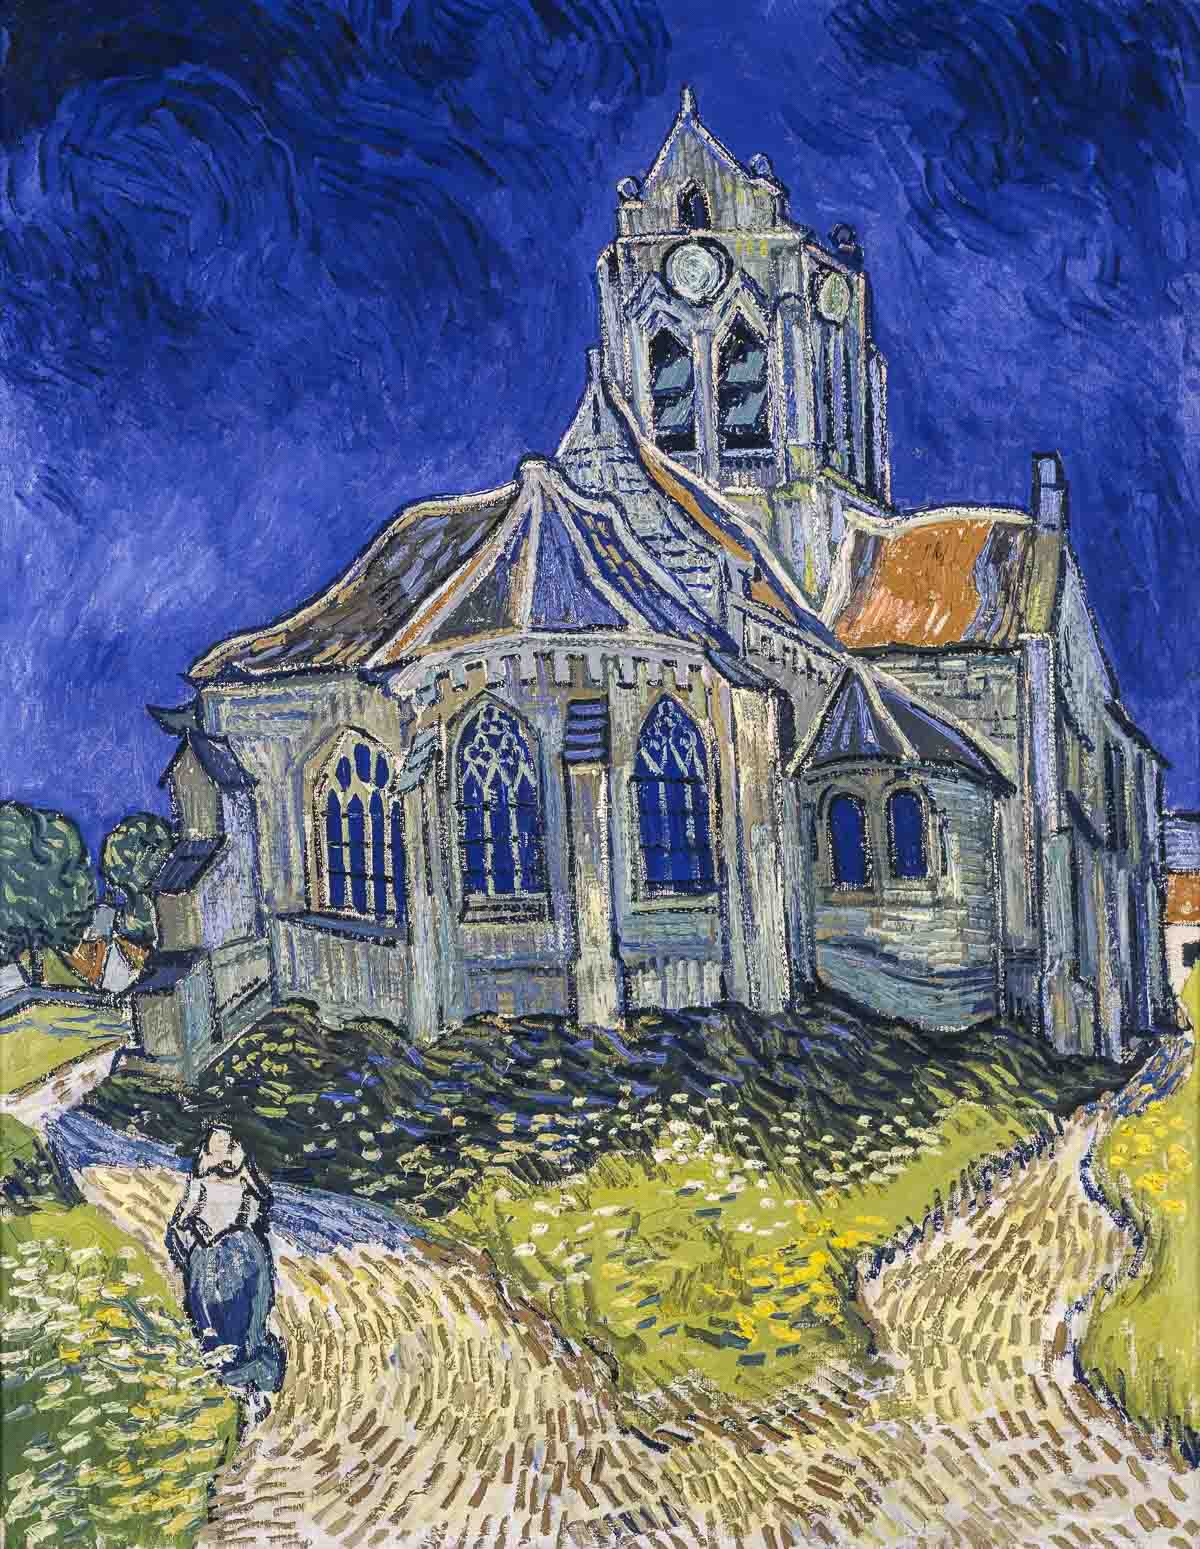 Homage to Van Gogh: A Day Trip to Auvers-sur-Oise | Earth Trippers